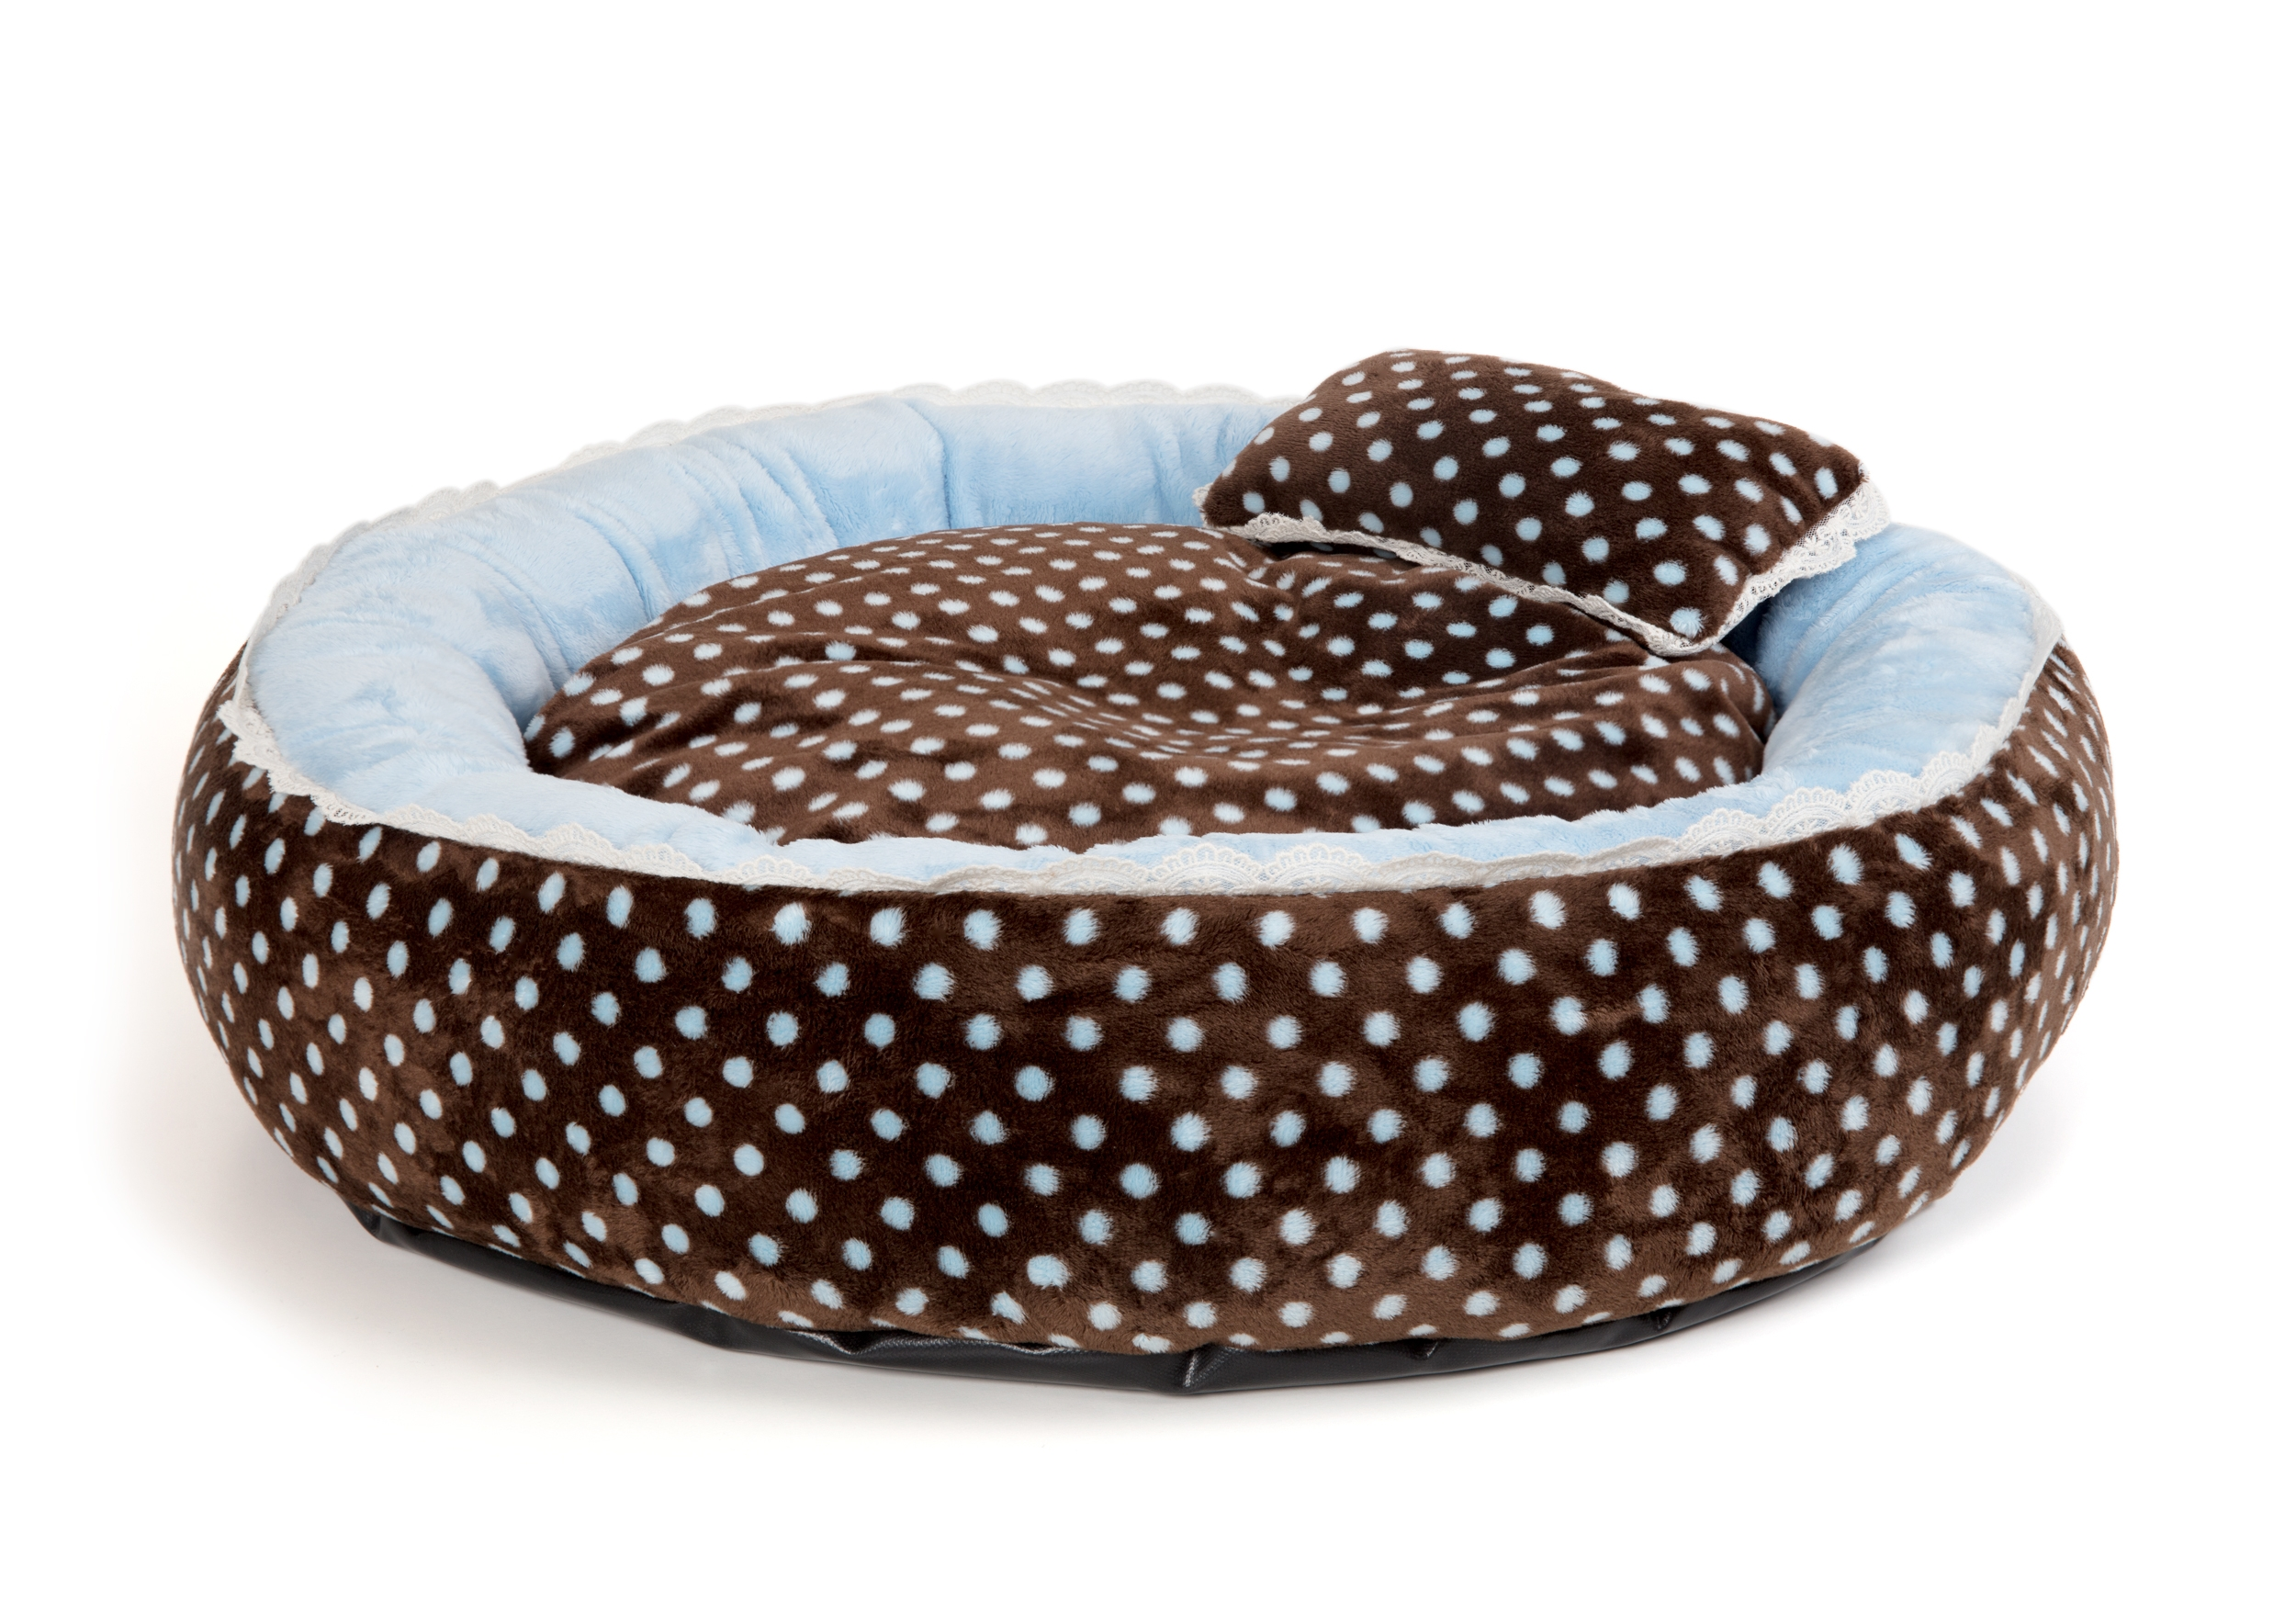 SOFT VELOUR POLKA RING BED - Blue